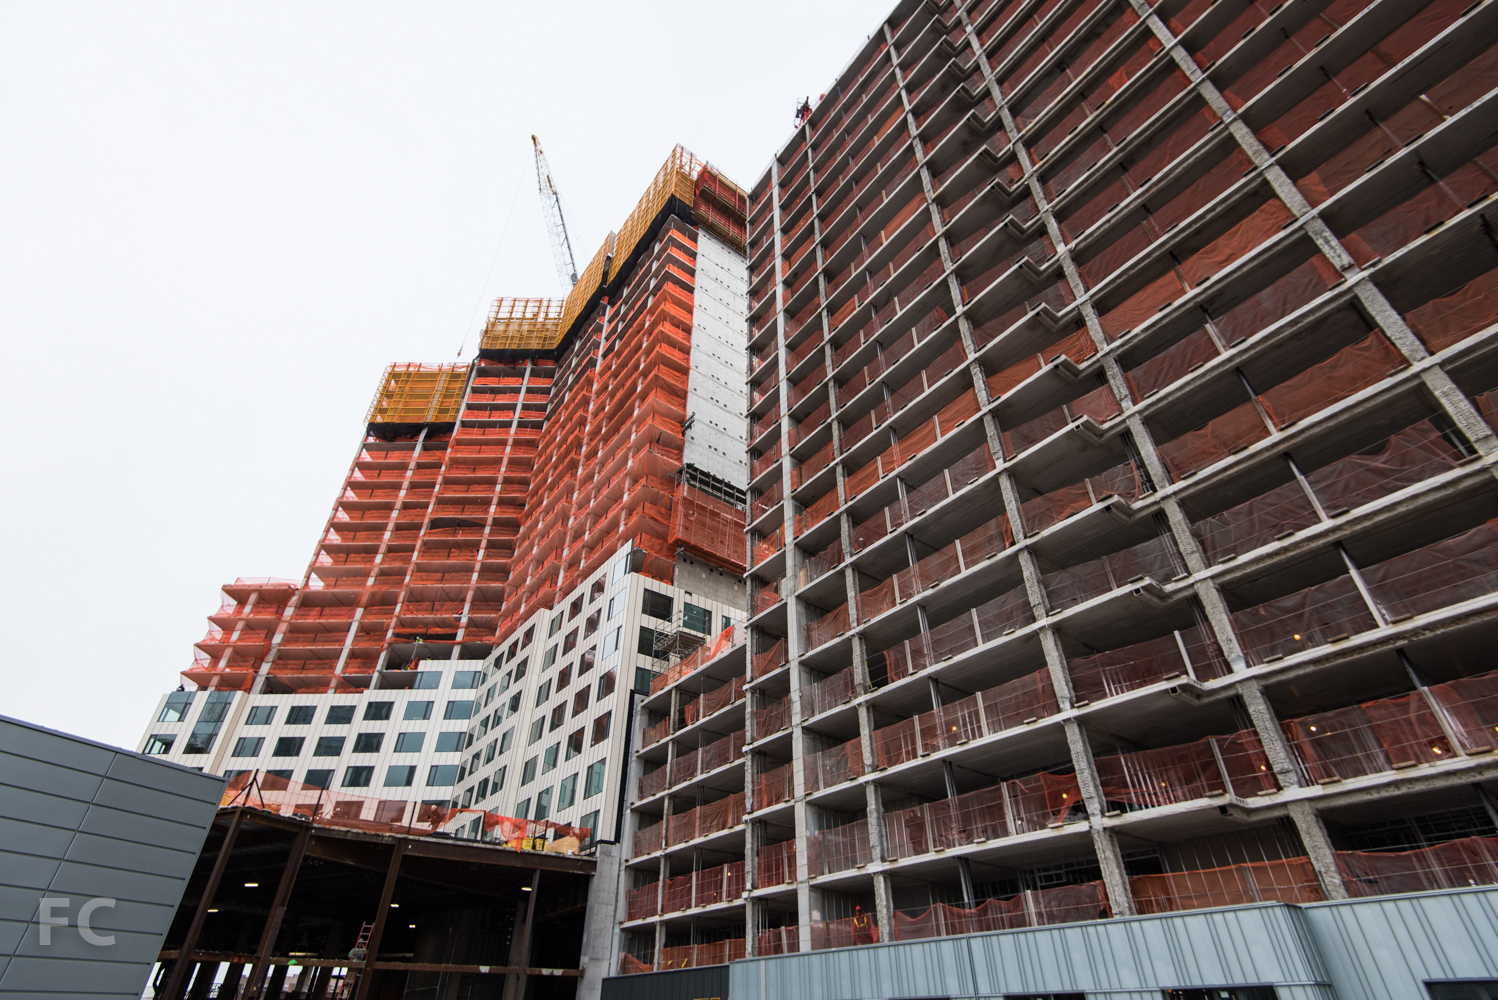 West facade of Phase Two's affordable housing (right) and market rate (left) towers.